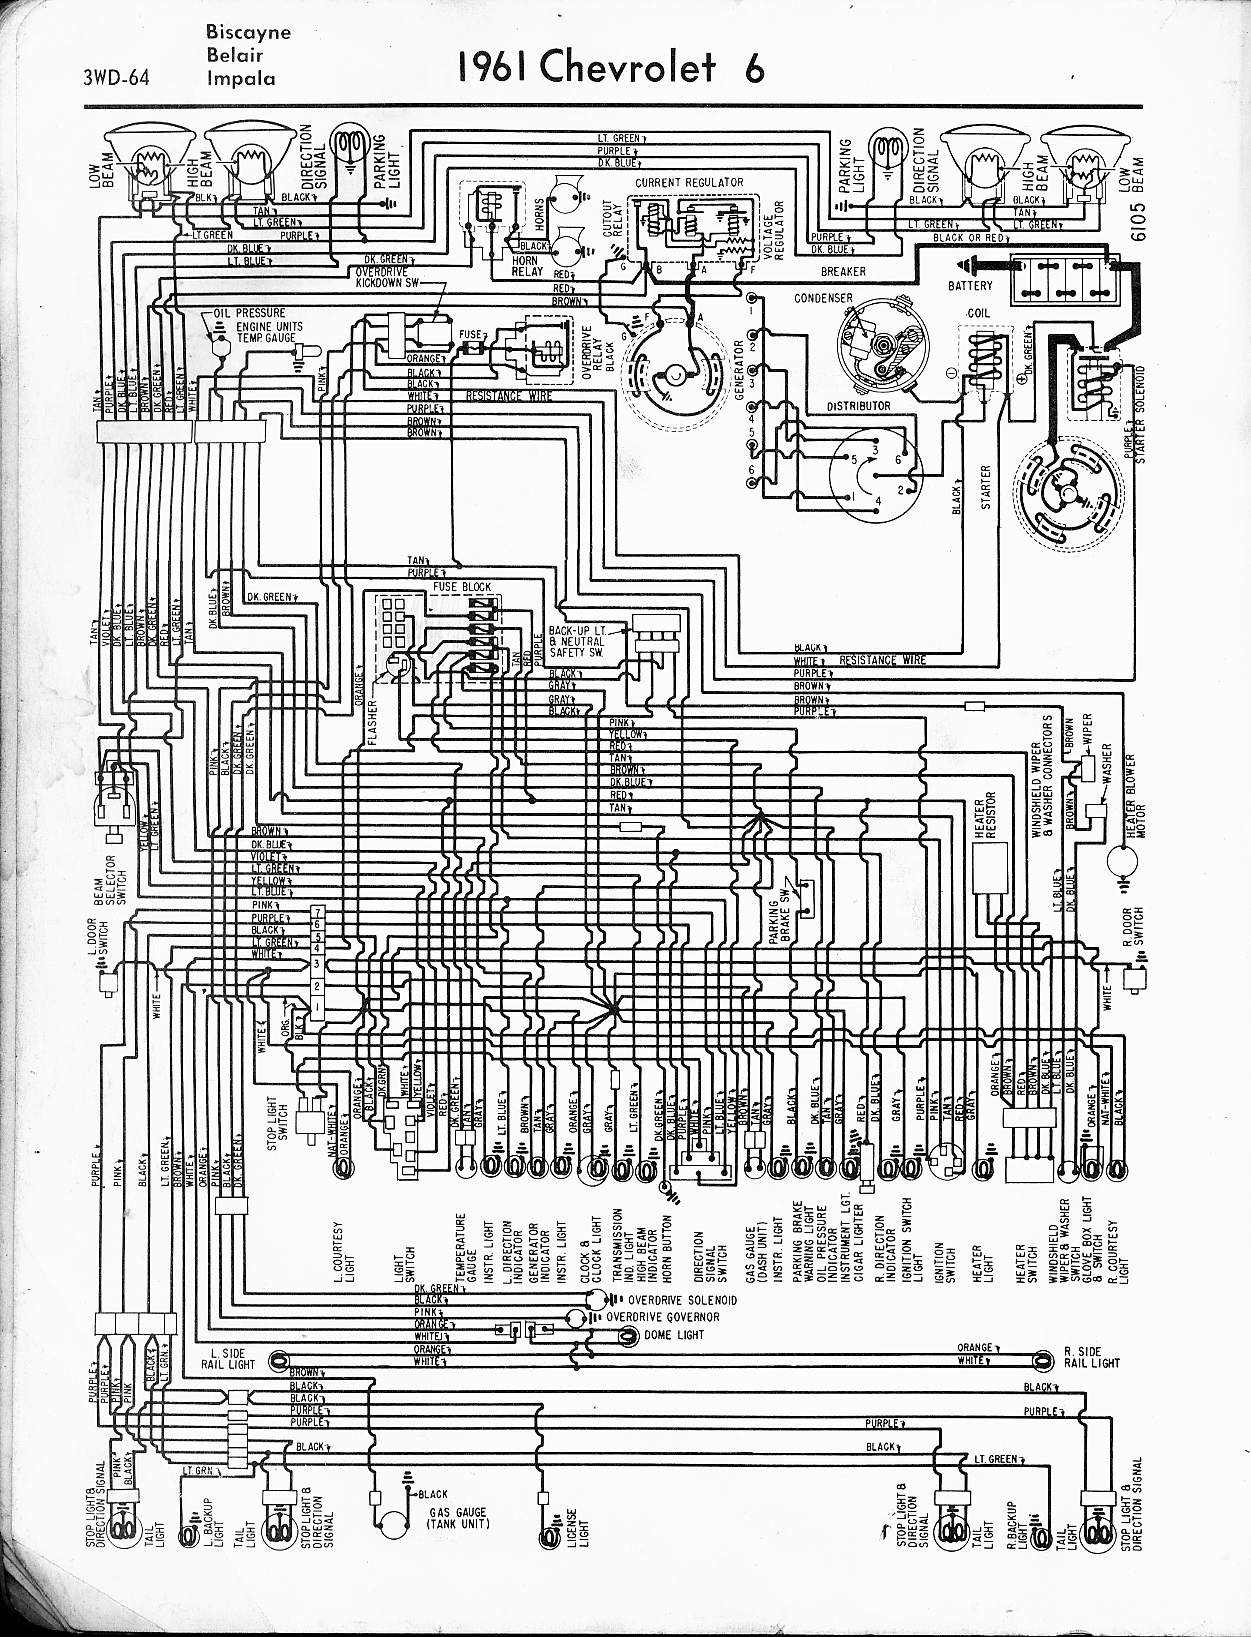 1965 Chevy Truck Fuse Block Diagrams Wiring Diagram Will Be A Thing Gm Box Schematic 1964 Coil Rh Macro Program Com 1995